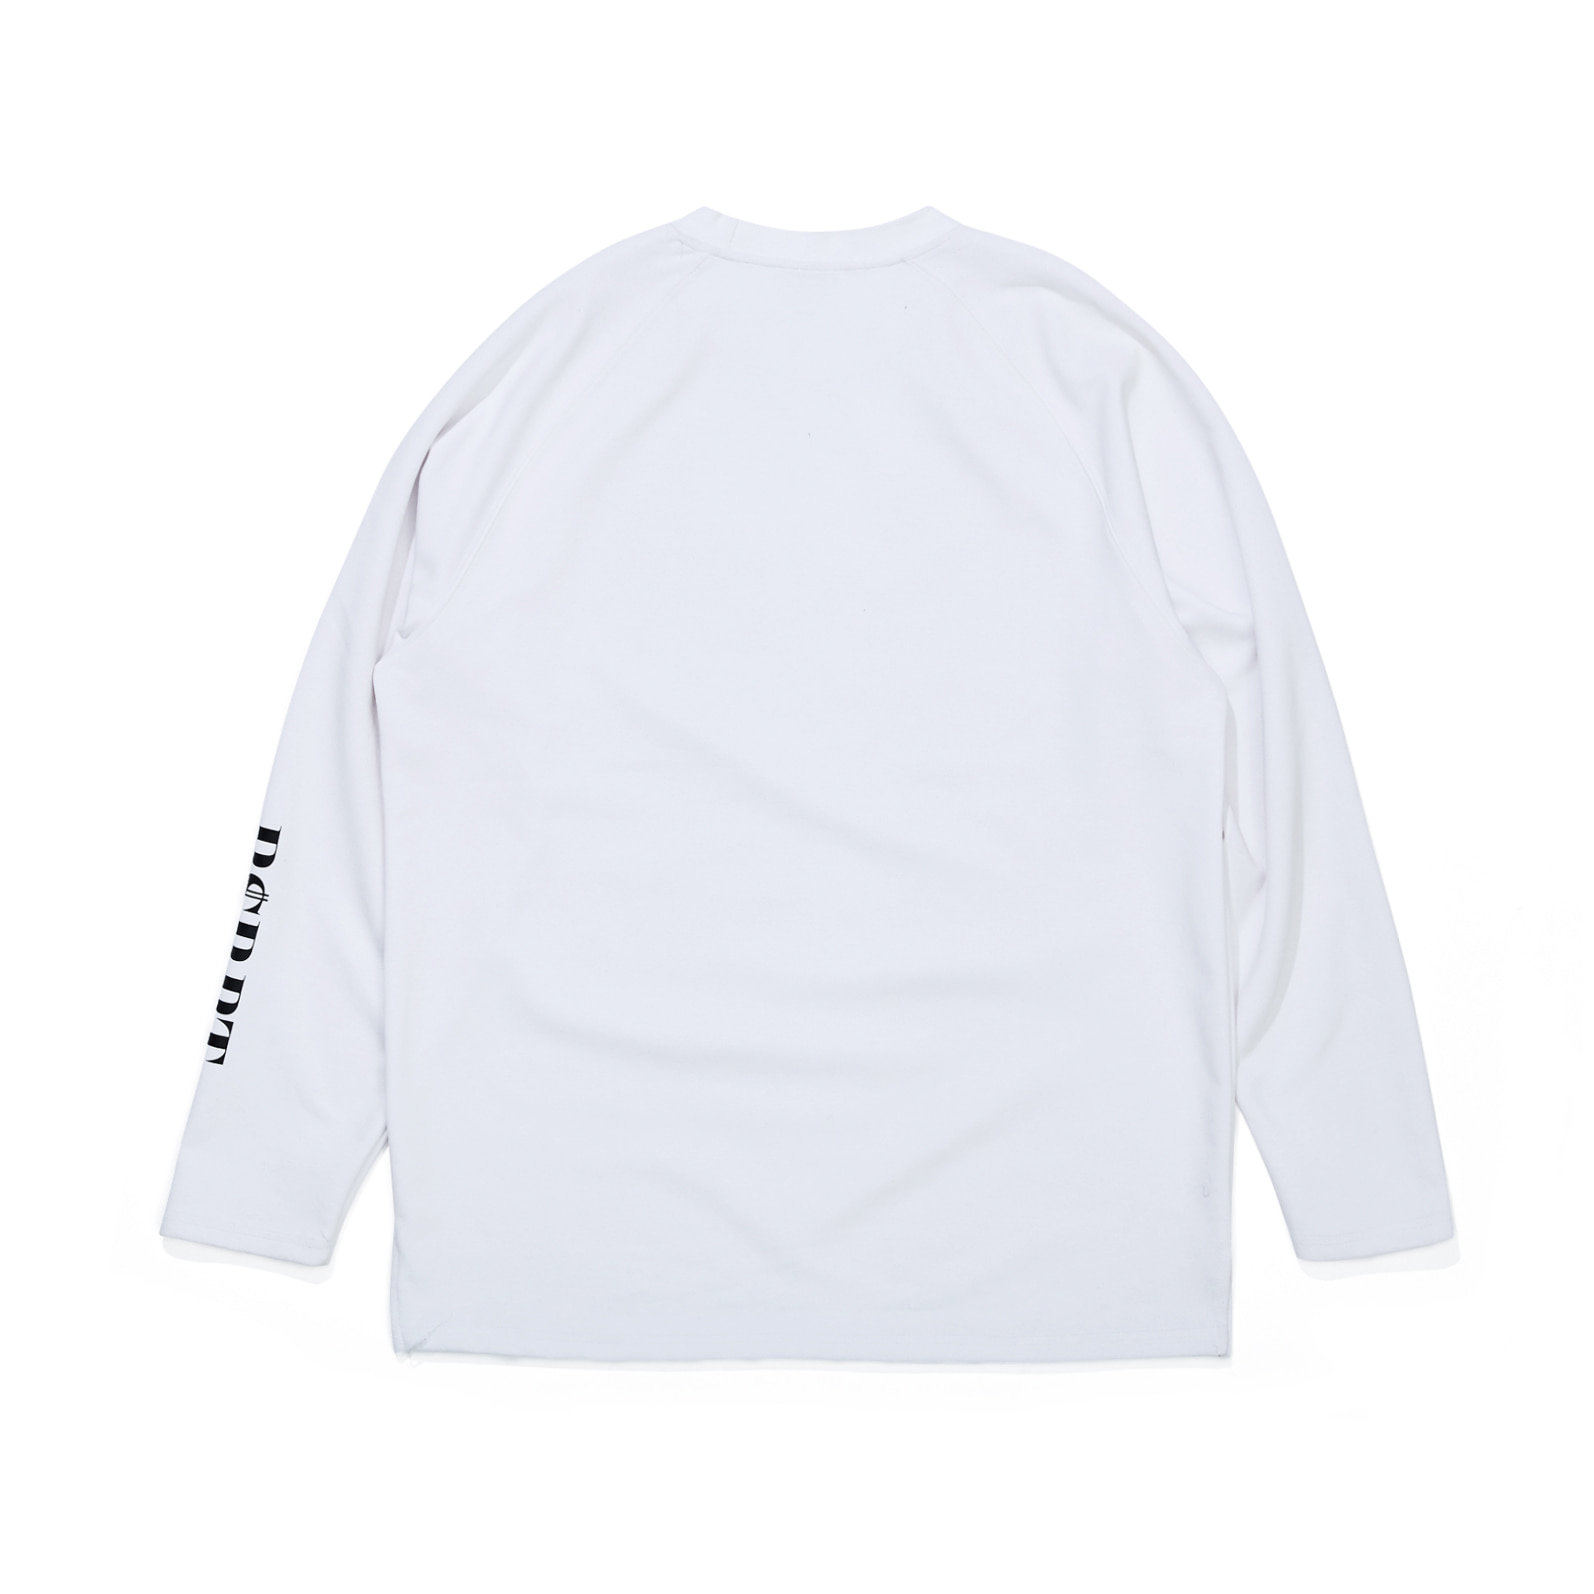 자체브랜드 BSRBT LONG SLEEVE TEE WHITE